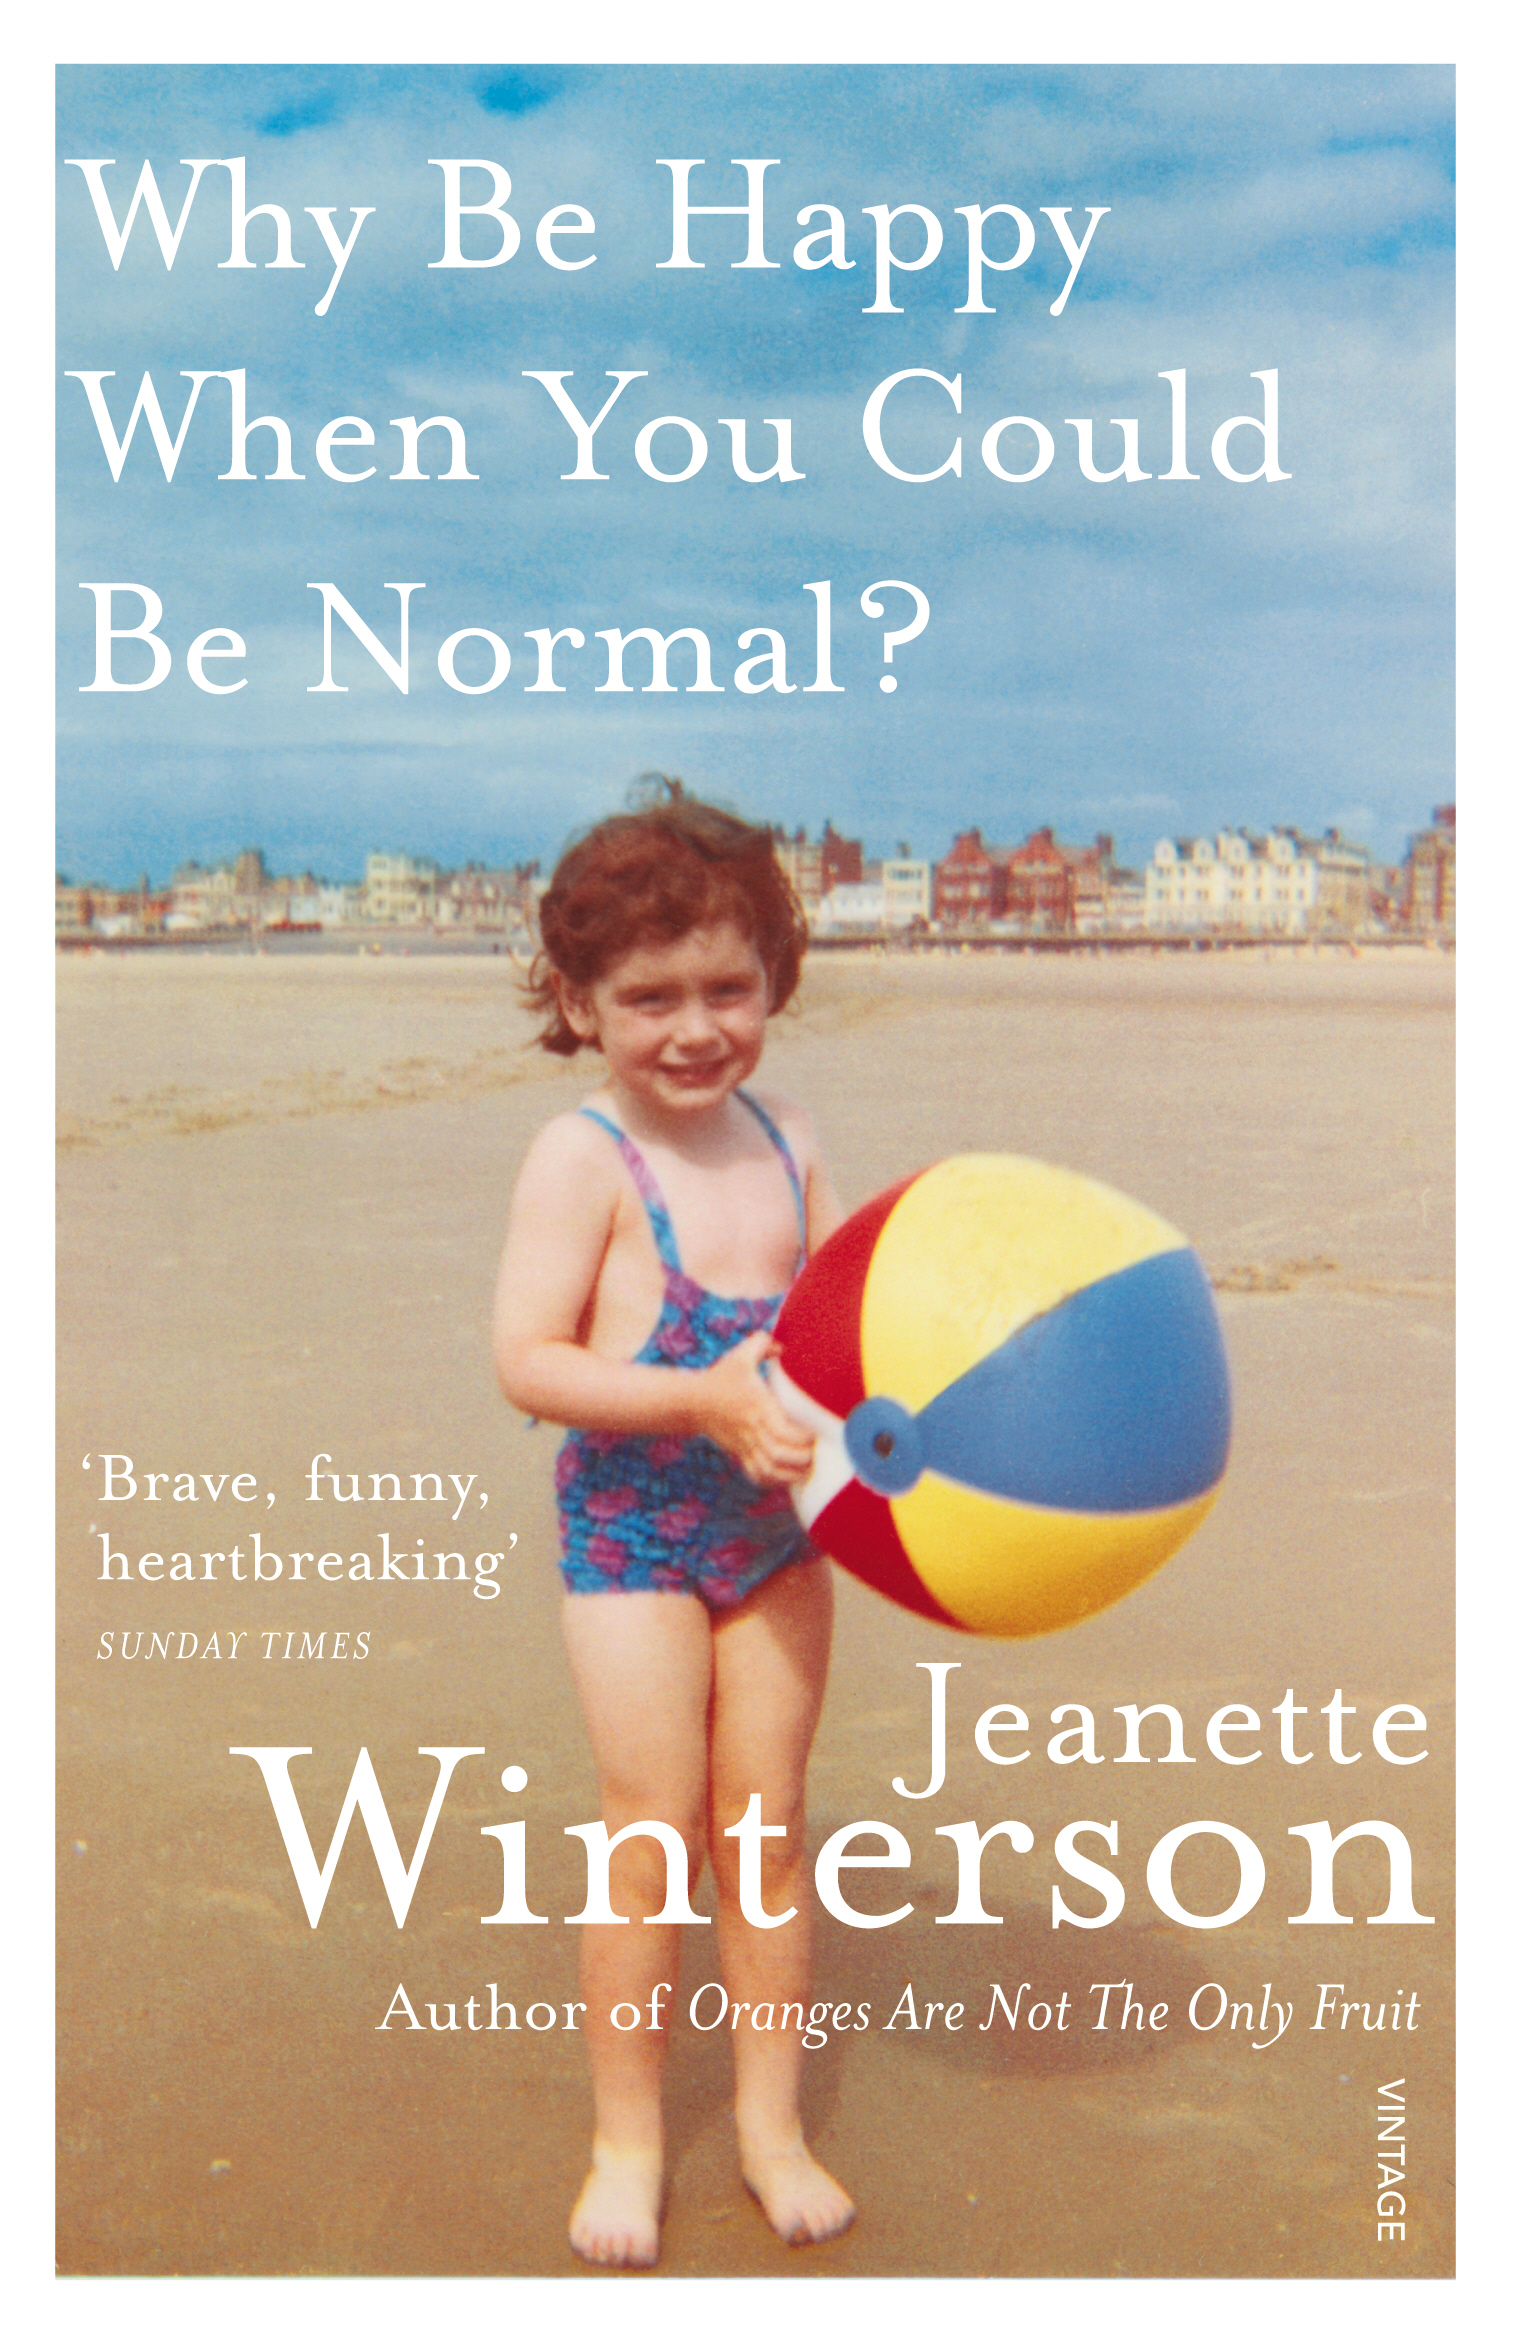 Why Be Happy When You Can Be Normal by Jeanette Winterson